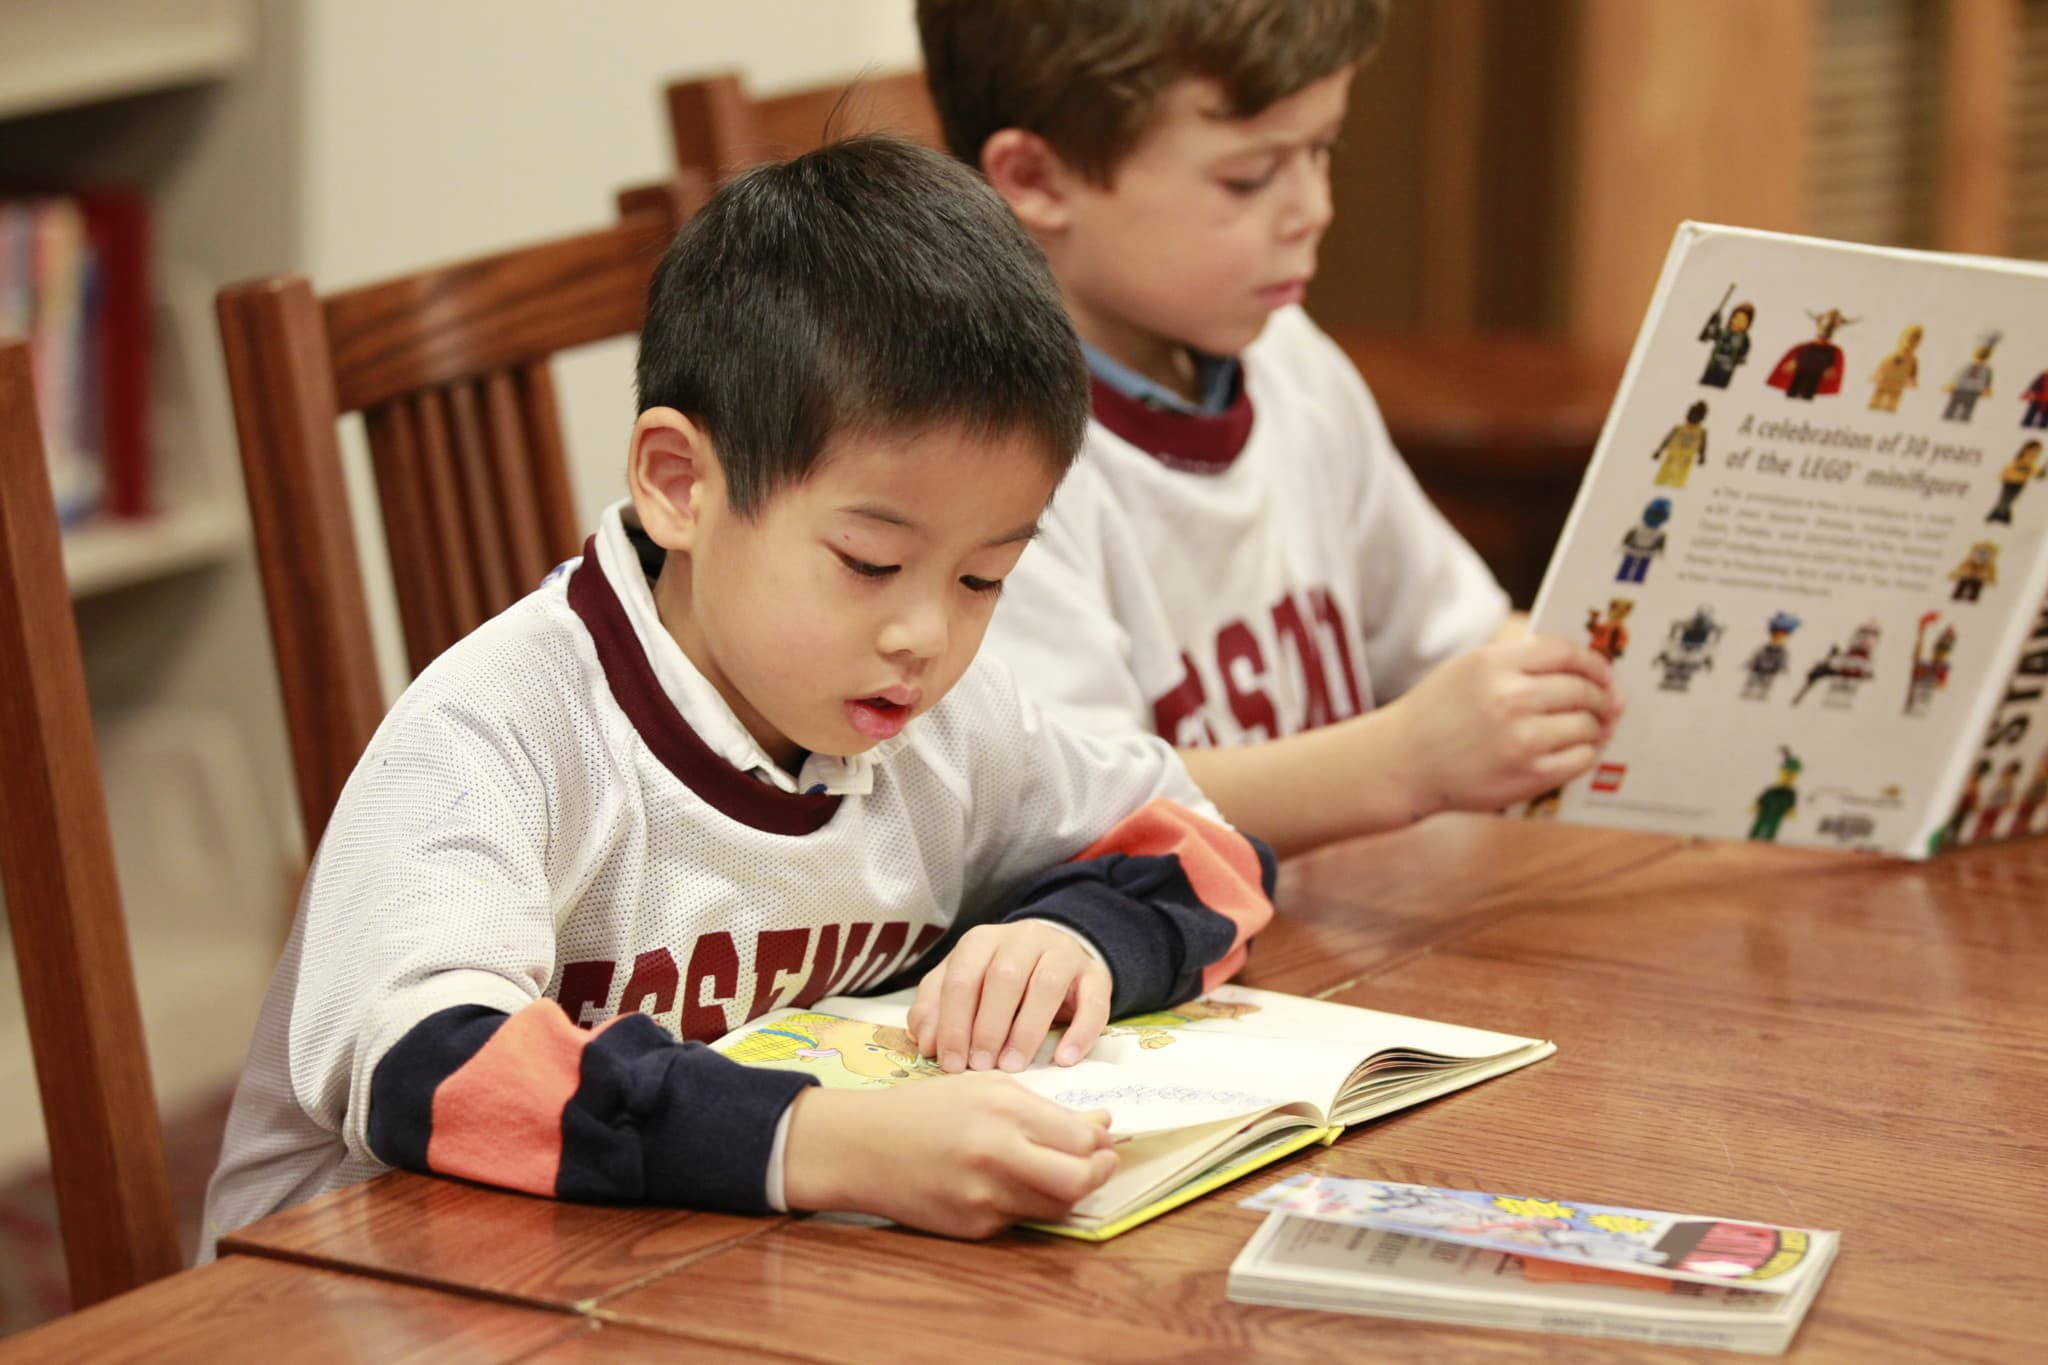 The 3 Best New Books For 5 Year Old Boys In